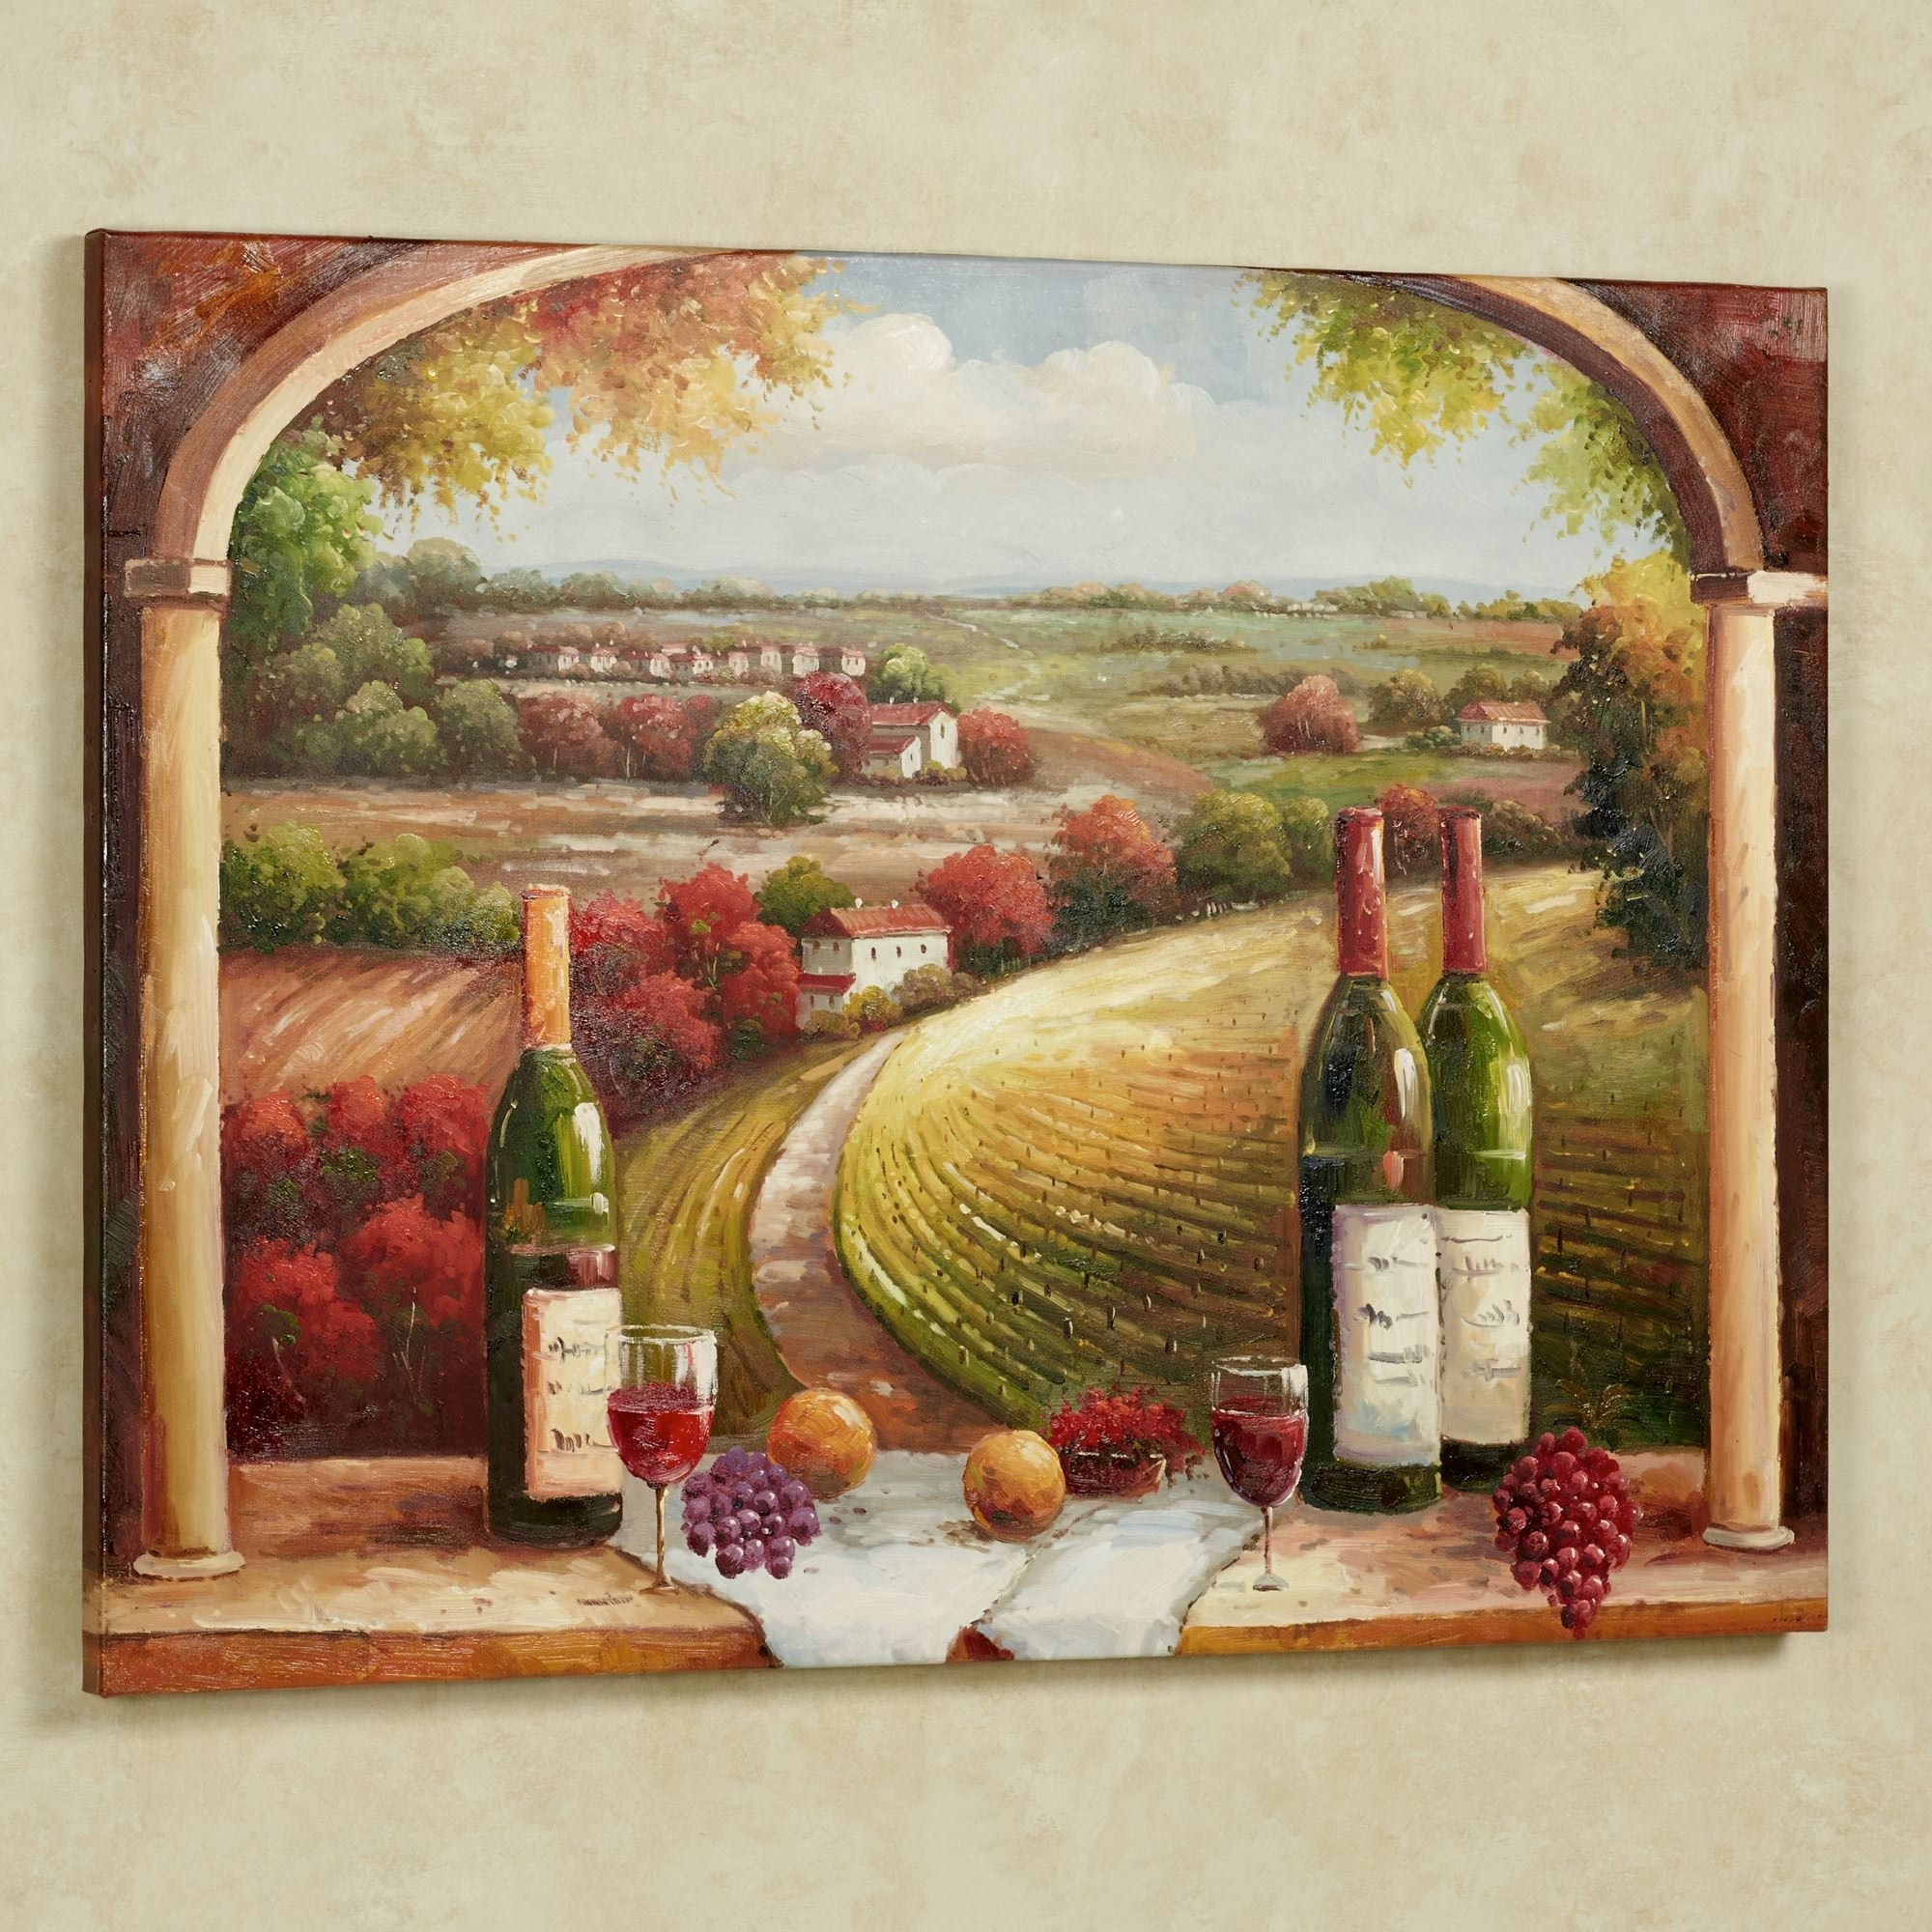 W Great Tuscan Wall Art – Wall Decoration And Wall Art Ideas Throughout Tuscan Wall Art (View 2 of 20)